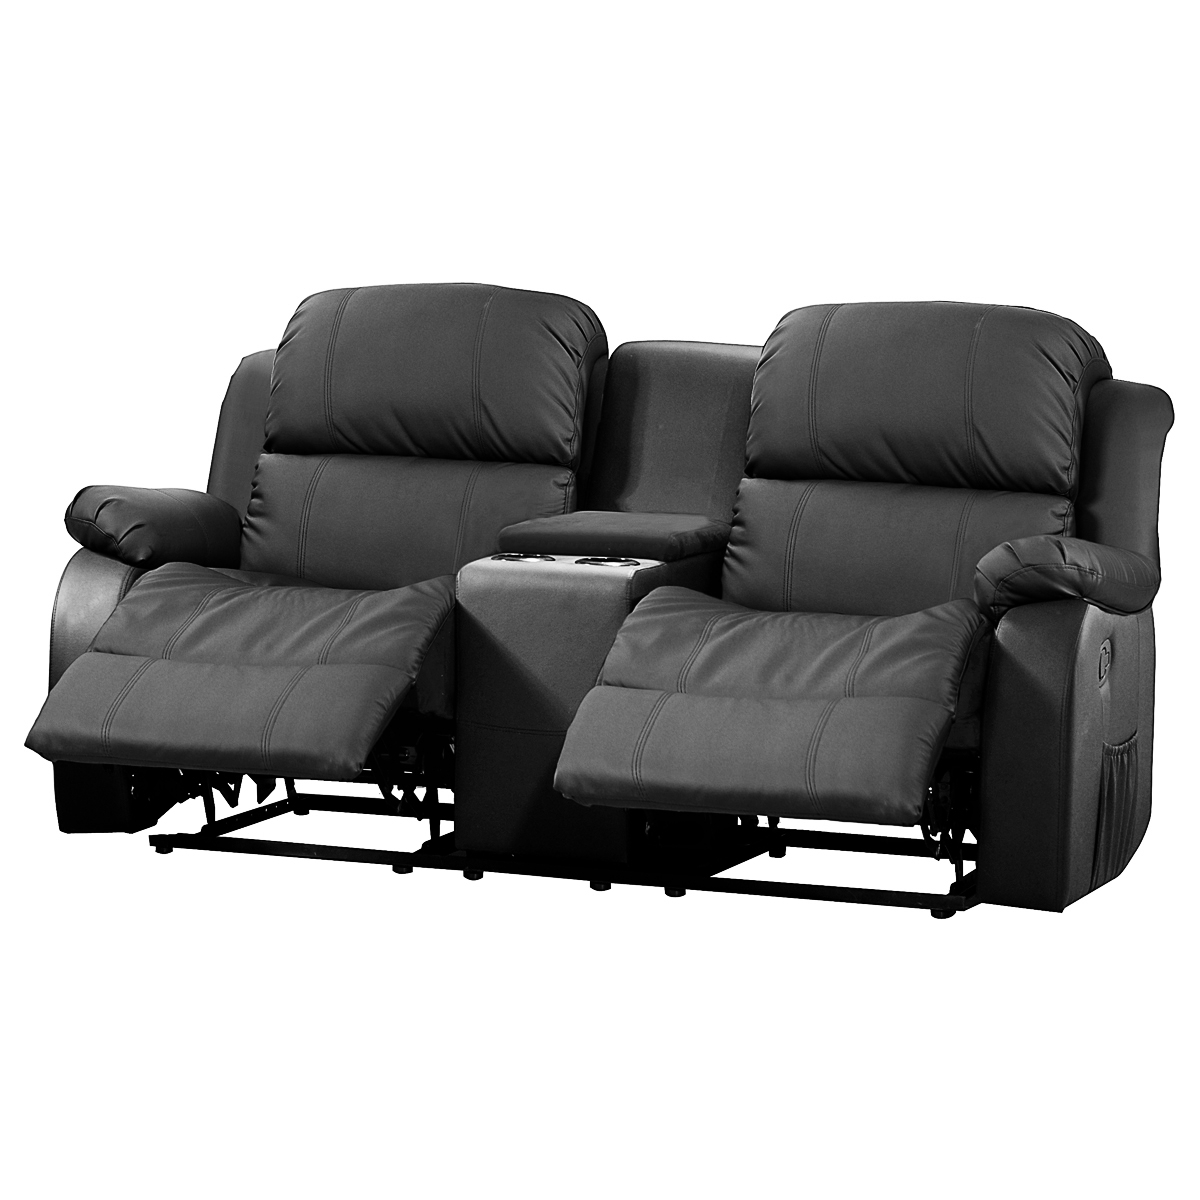 sofa mit tea table lakos 2 sitzer kinosofa in schwarz mit relaxfunktion eur 519 95 picclick de. Black Bedroom Furniture Sets. Home Design Ideas